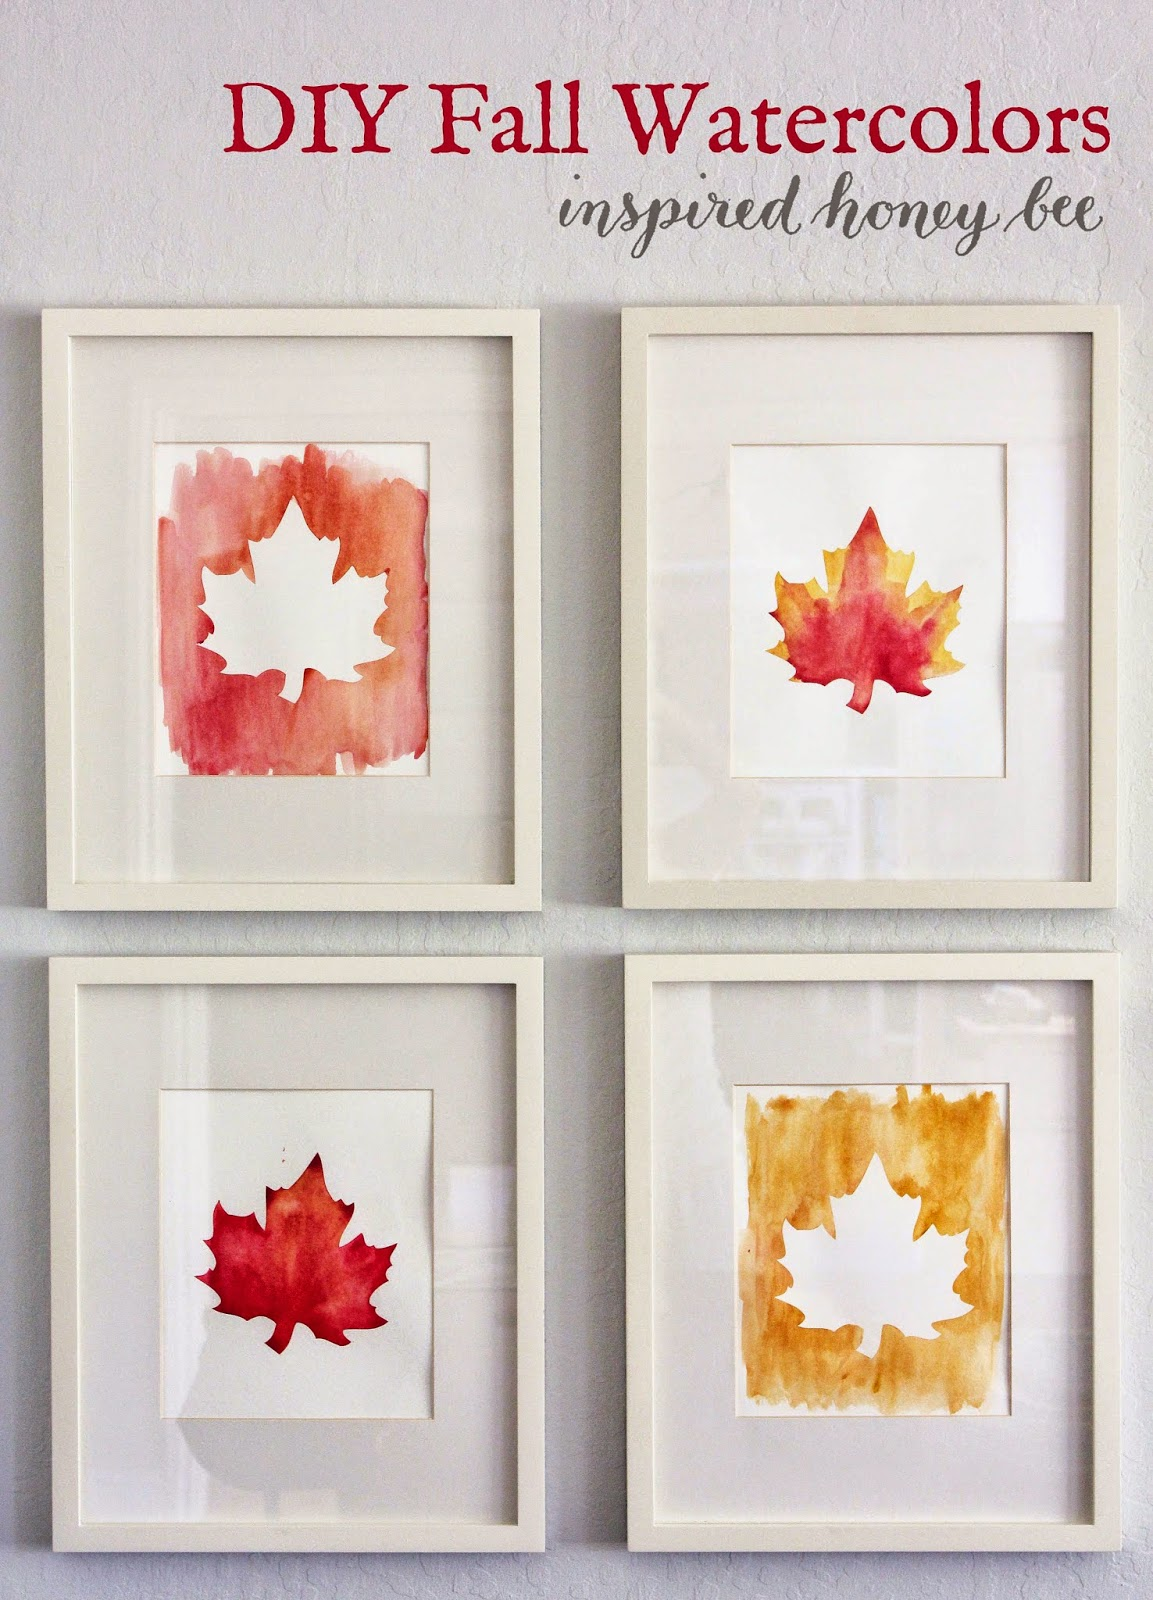 Craft Diy Fall Watercolor Art Inspired Honey Bee